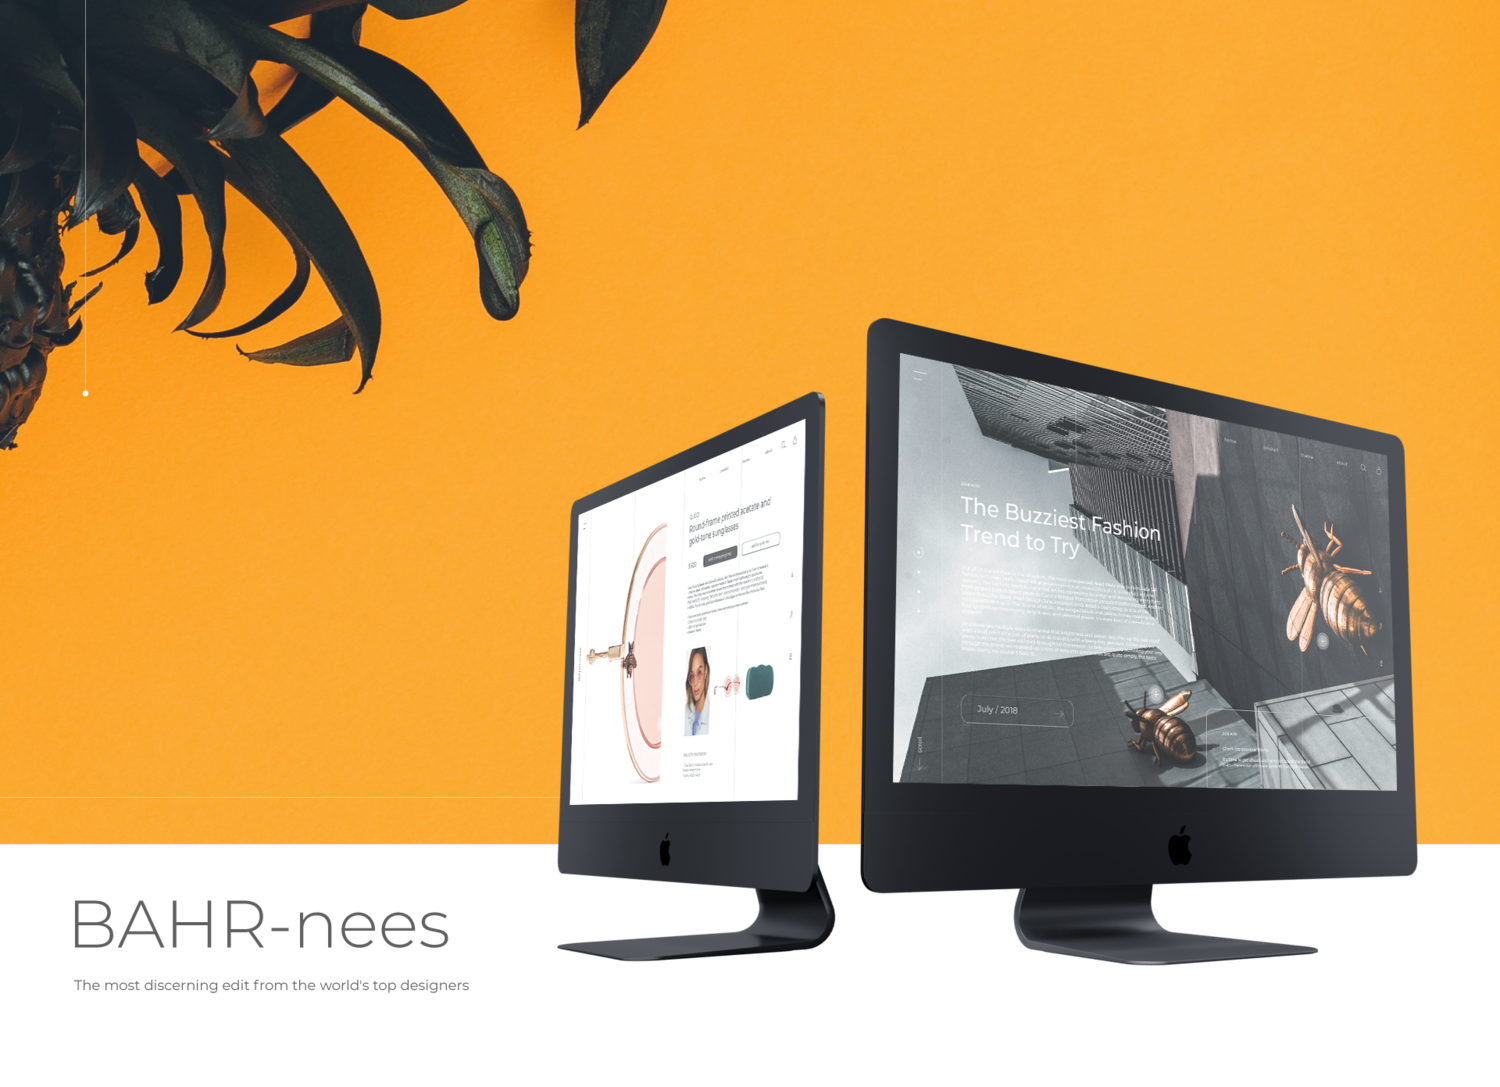 BAHR-ness - The new design project aims to reinvent luxury marketing for younger shoppers.